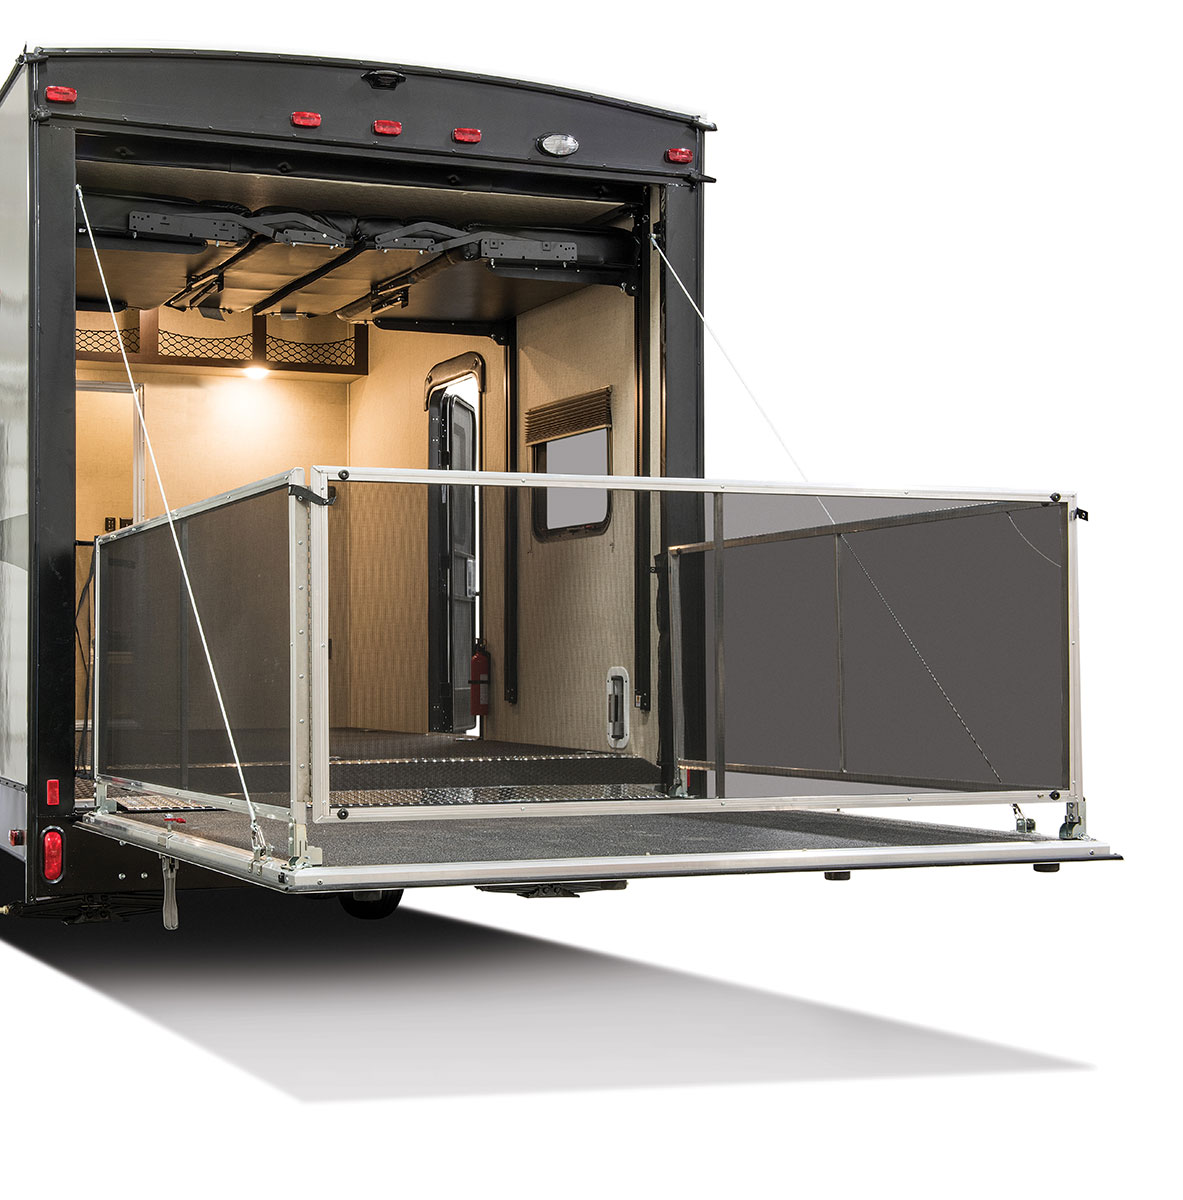 Toy Hauler With Outdoor Kitchen: Sportster Toy Hauler Travel Trailer